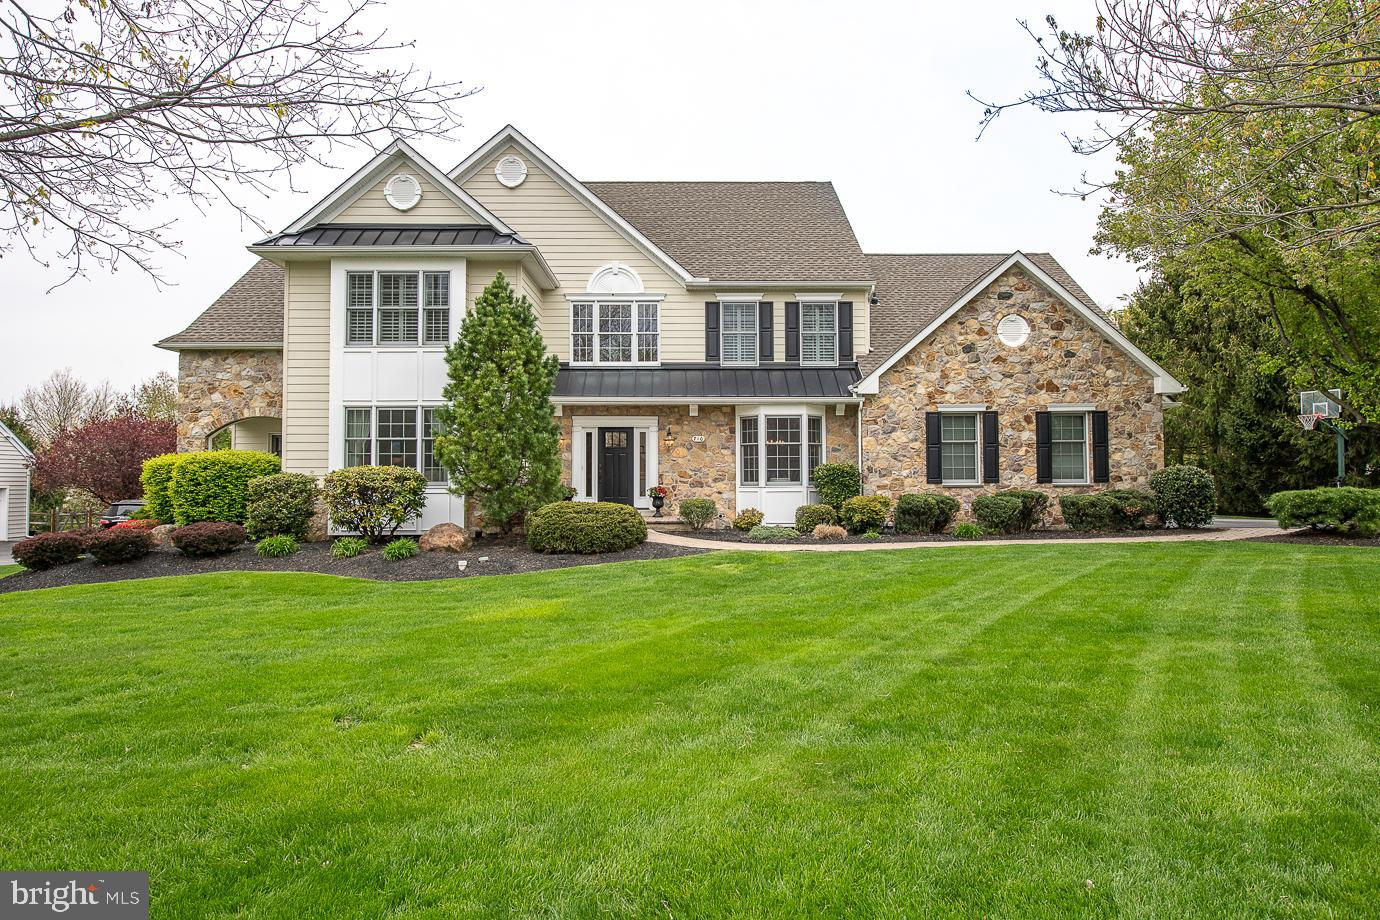 """Gorgeous classic stone home situated on a premium, private lot in the sought after community of """"Clocktower Woods"""" in East Goshen. No more stucco! Complete exterior renovation featuring Hardie-board siding, raised seam accent roofs on front elevation & over 3-car garage, new front & rear entry doors, new soffits & fascia, new TimberTech deck off Master Sitting Room & 3 new carriage style garage doors. Neutrally decorated & beautifully appointed with over 4,500 sq ft on 1st & 2nd floors featuring 5 Bedrooms, 4 full Baths, 1 half Bath, 4 FPs plus an add'l 1,500 sq ft of living space in the professionally finished Lower Level. 1st Floor features hardwood throughout, elegant 2-story Foyer w/turned staircase; Dining Rm w/hardwood, crown molding, wainscoting & window seat;  Living Rm w/hardwood, crown, triple window & gas FP; private Study w/glass doors, hardwood & custom built-ins; Family Room w/hardwood, crown, stone woodburning FP & exit to screened porch; Kitchen/Breakfast Rm w/hardwood, granite countertops, GE Cafe stainless 5-burner gas cooking & microwave, stainless French door refrig & Butler's Pantry; large vaulted Great Room/Sunroom addition w/gas FP, hardwood & casement windows w/transoms above; expanded Laundry/Mudroom w/custom lockers. 2nd floor offers luxury Master Suite w/hardwood, tray ceiling, triple window, 2 walk-in closets. Master Sitting Room exiting to private TimberTech deck & Master Bath w/enlarged tile stall shower, jetted soaking tub, skylites & granite top vanities; Princess Suite offers hardwood & private en-suite bath with tub/shower; 3 add'l family Bedrooms plus renovated Hall Bath w/subway tile shower & seamless doors. Finished Lower Level w/outside entry features 1,500 sq ft of living space incl Media Room & Game Room area, Bar area w/granite & wet bar, Professional Gym, gas FP plus Full Bath w/stall shower. Additional amenities include 3-car garage, new roof (2014), new HVAC (2017), plantation shutters throughout 2nd floor, designer custom"""